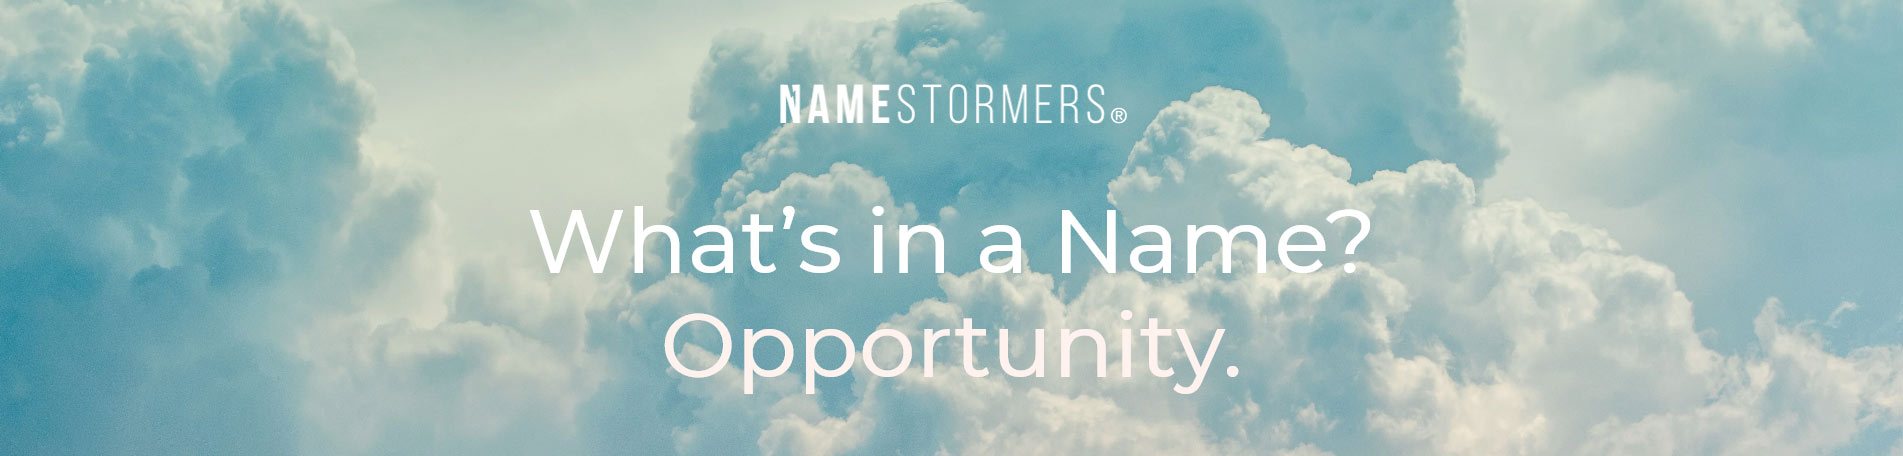 What's in a Name? Opportunity